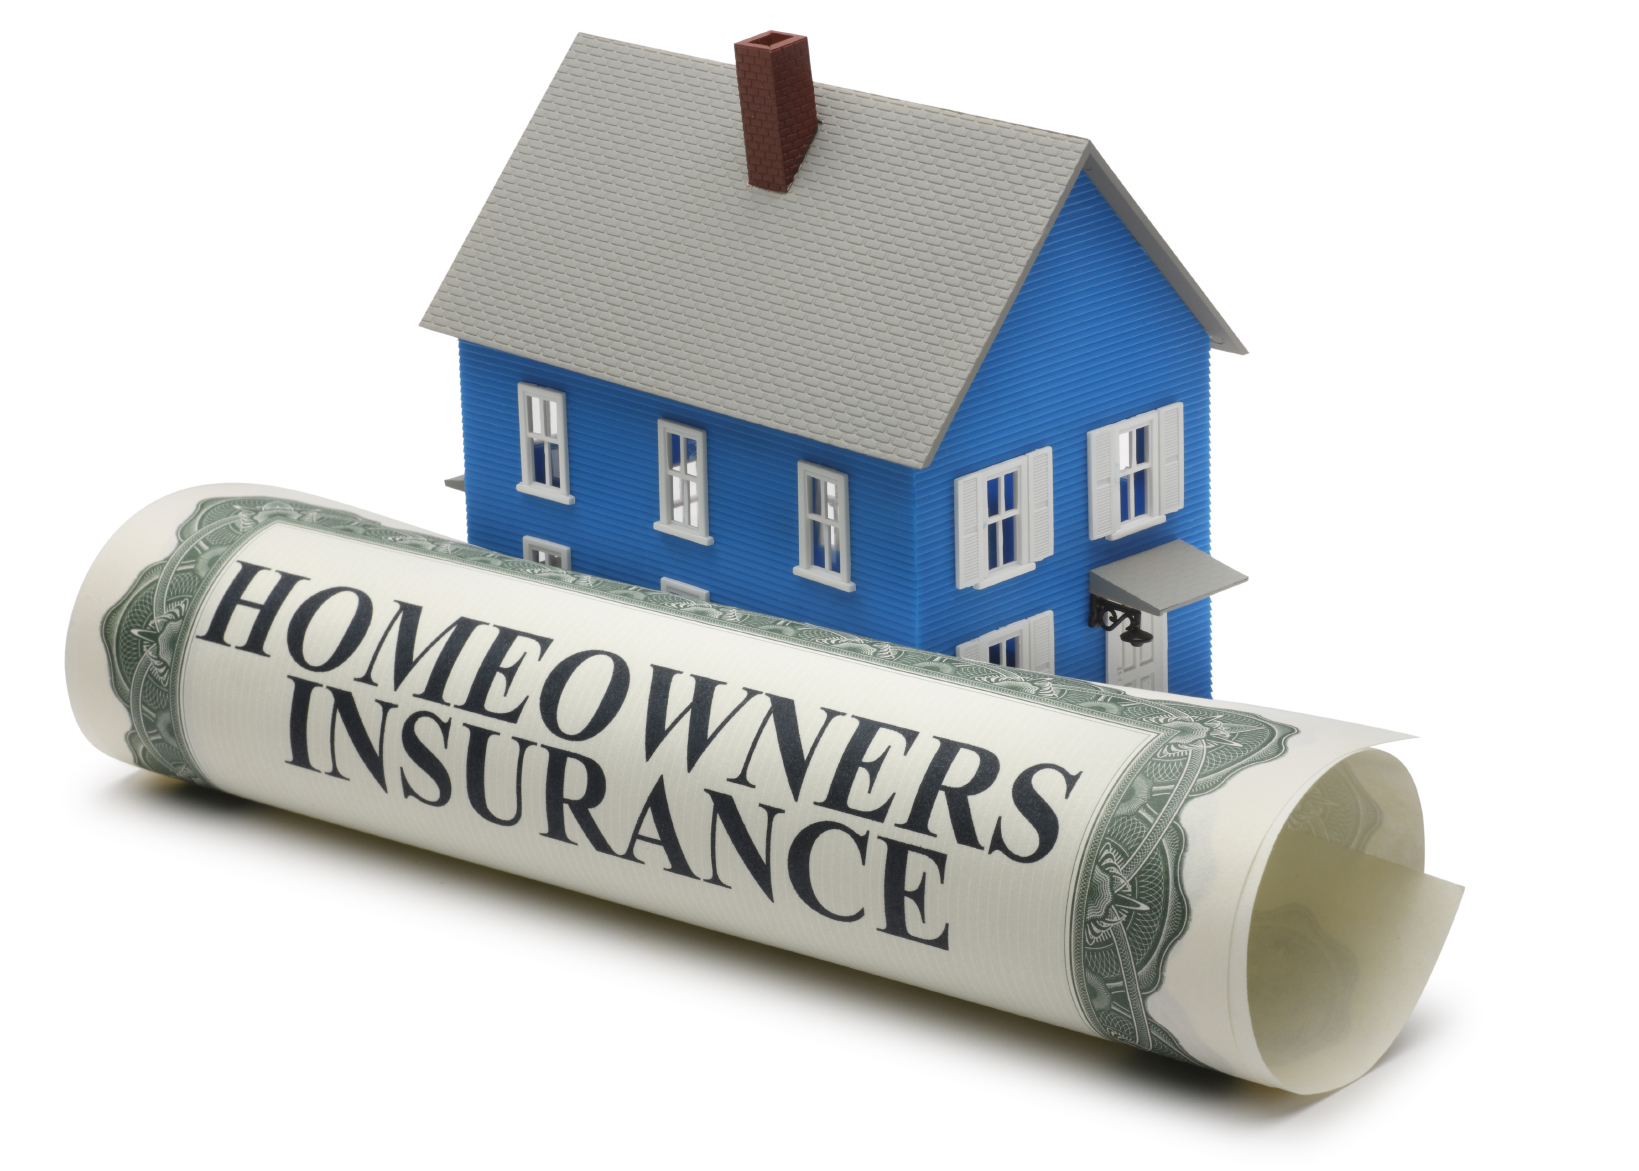 Homeowners Insurance Artwork